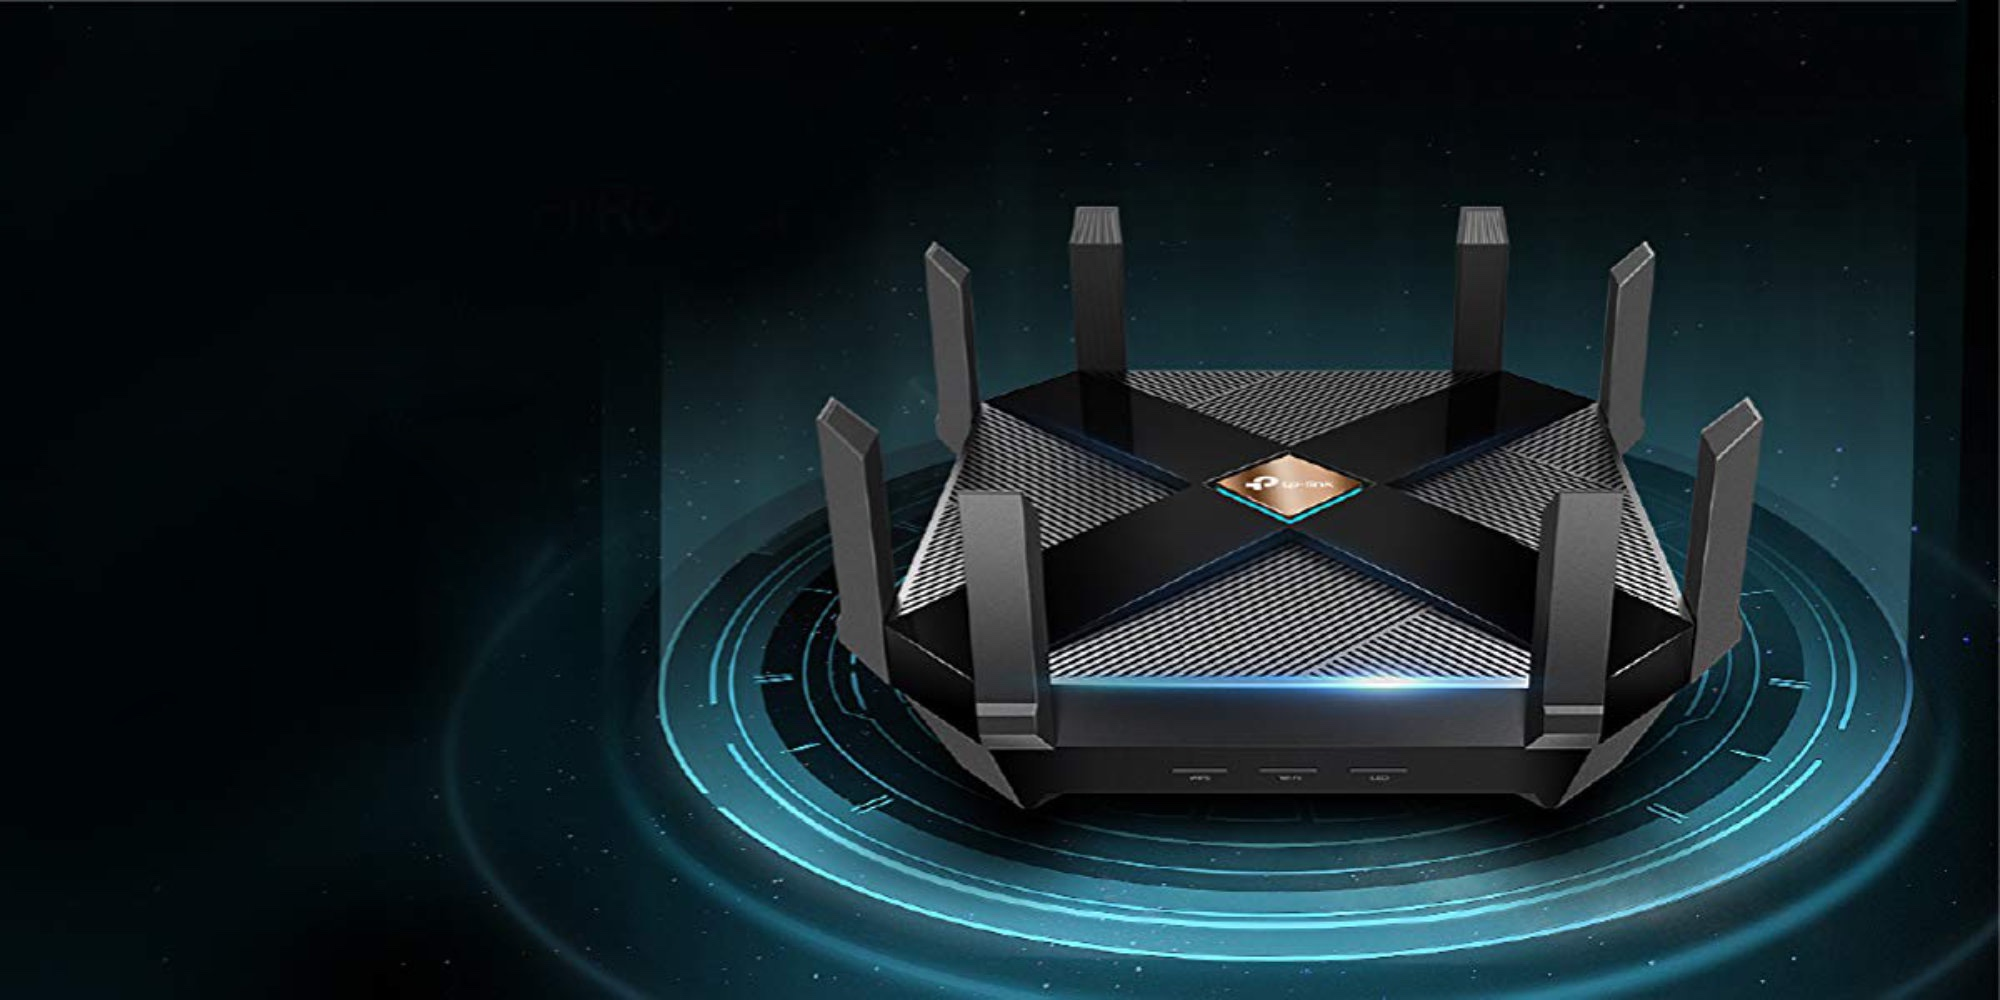 TP-Link announces two new 802.11ax routers that support up to 4x more devices and 10Gb/s Wi-Fi